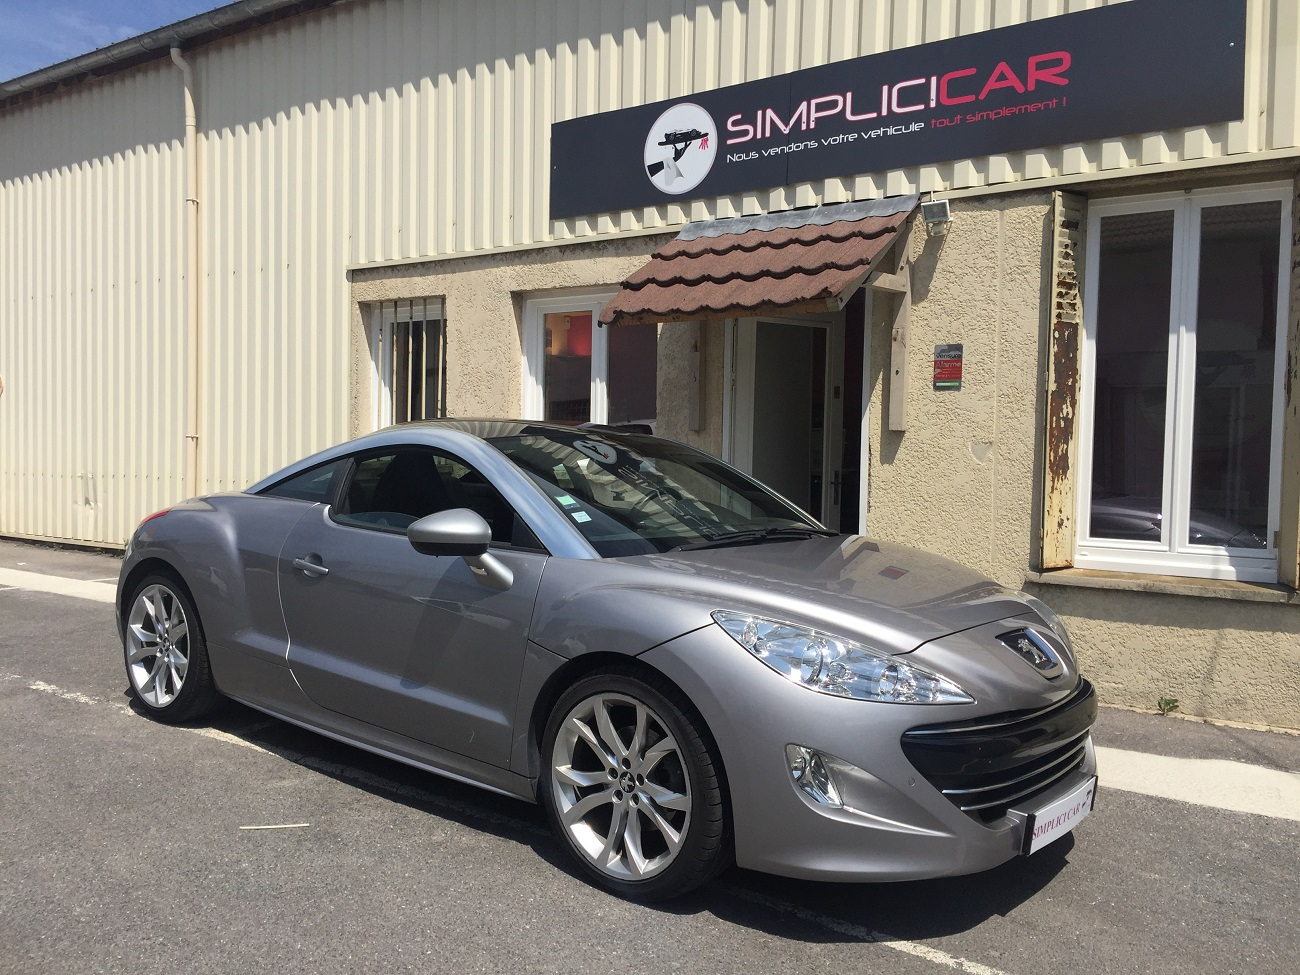 voiture peugeot rcz 1 6 thp 156ch occasion essence 2010 55800 km 13490 lagny sur. Black Bedroom Furniture Sets. Home Design Ideas